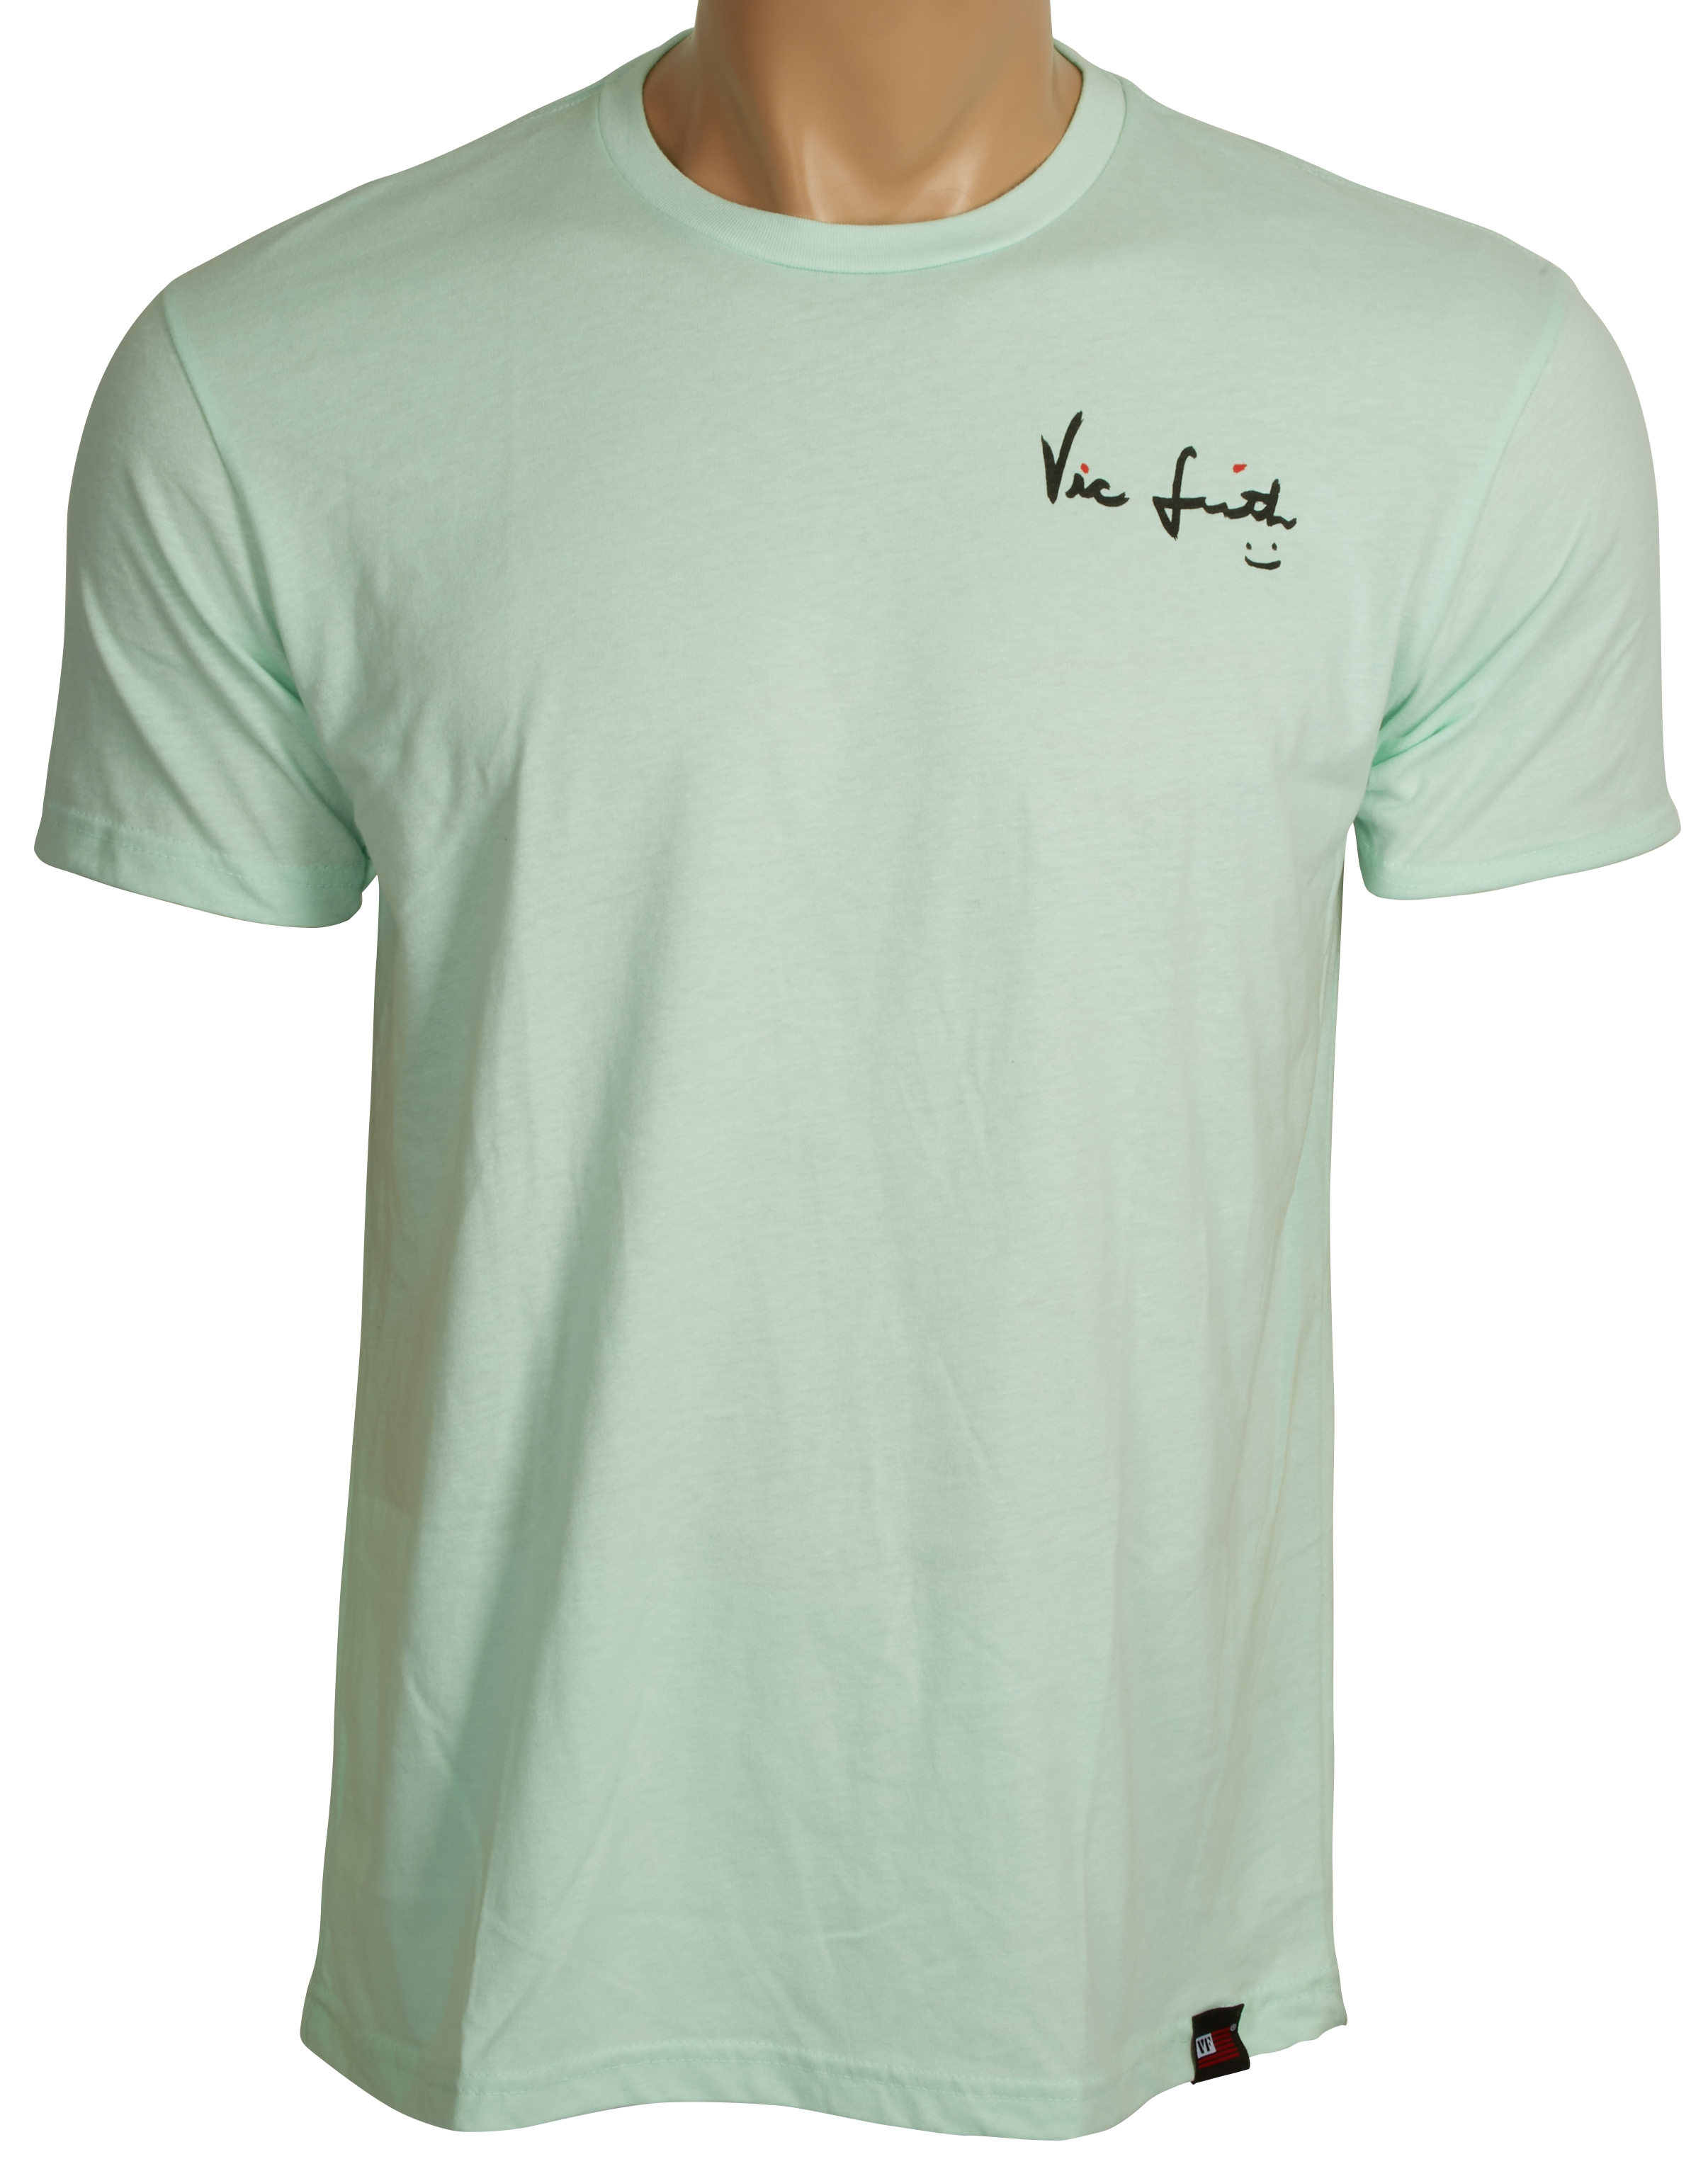 VIC FIRTH Neo Mint Signature Tee Small